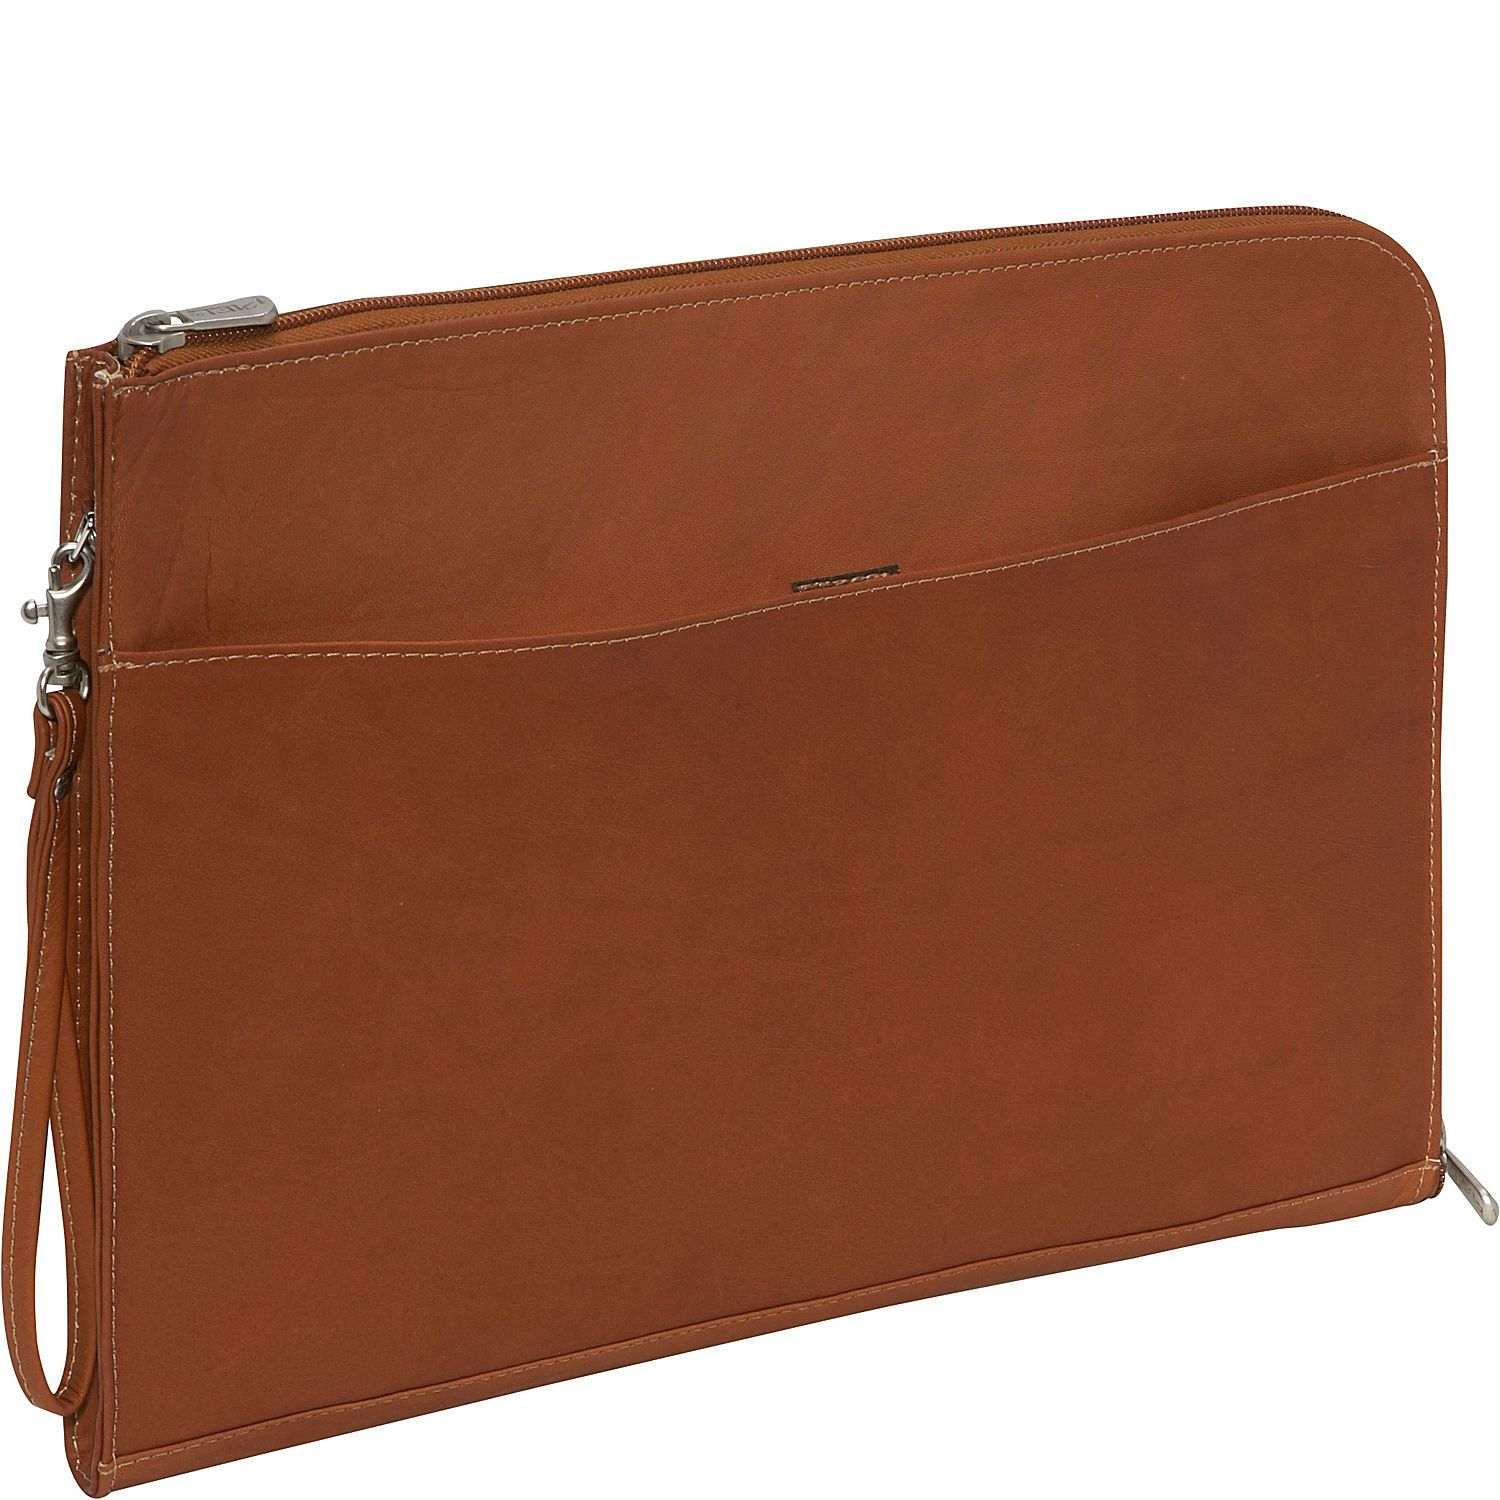 I bought this envelope for my laptop and I recommend it to anyone who loves quality leatherhttp://www.ebags.com/brand/piel